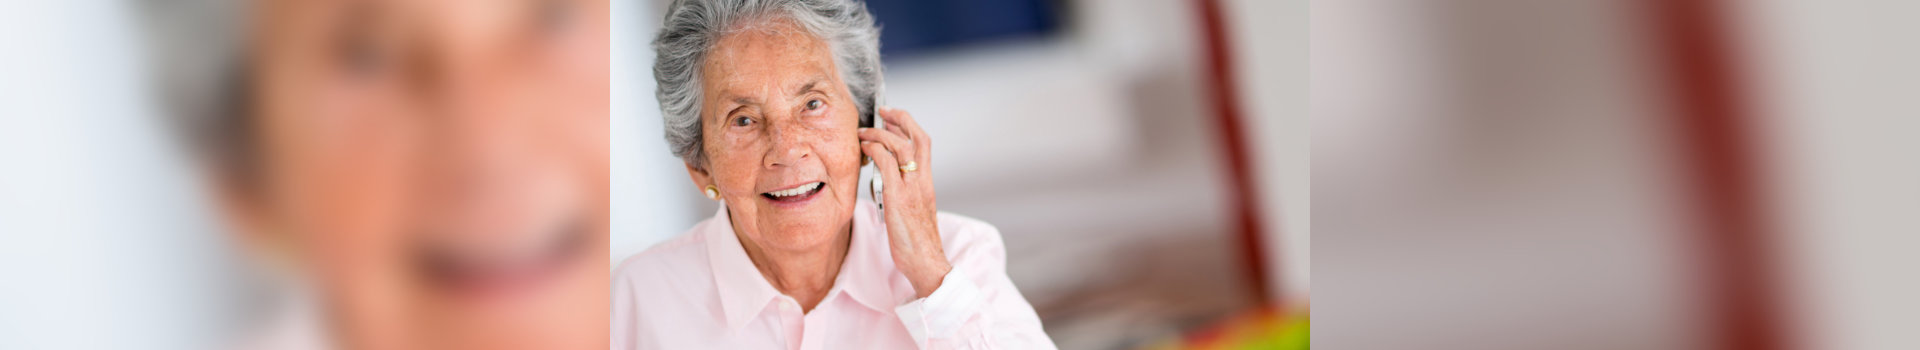 old woman calling someone using her mobile phone